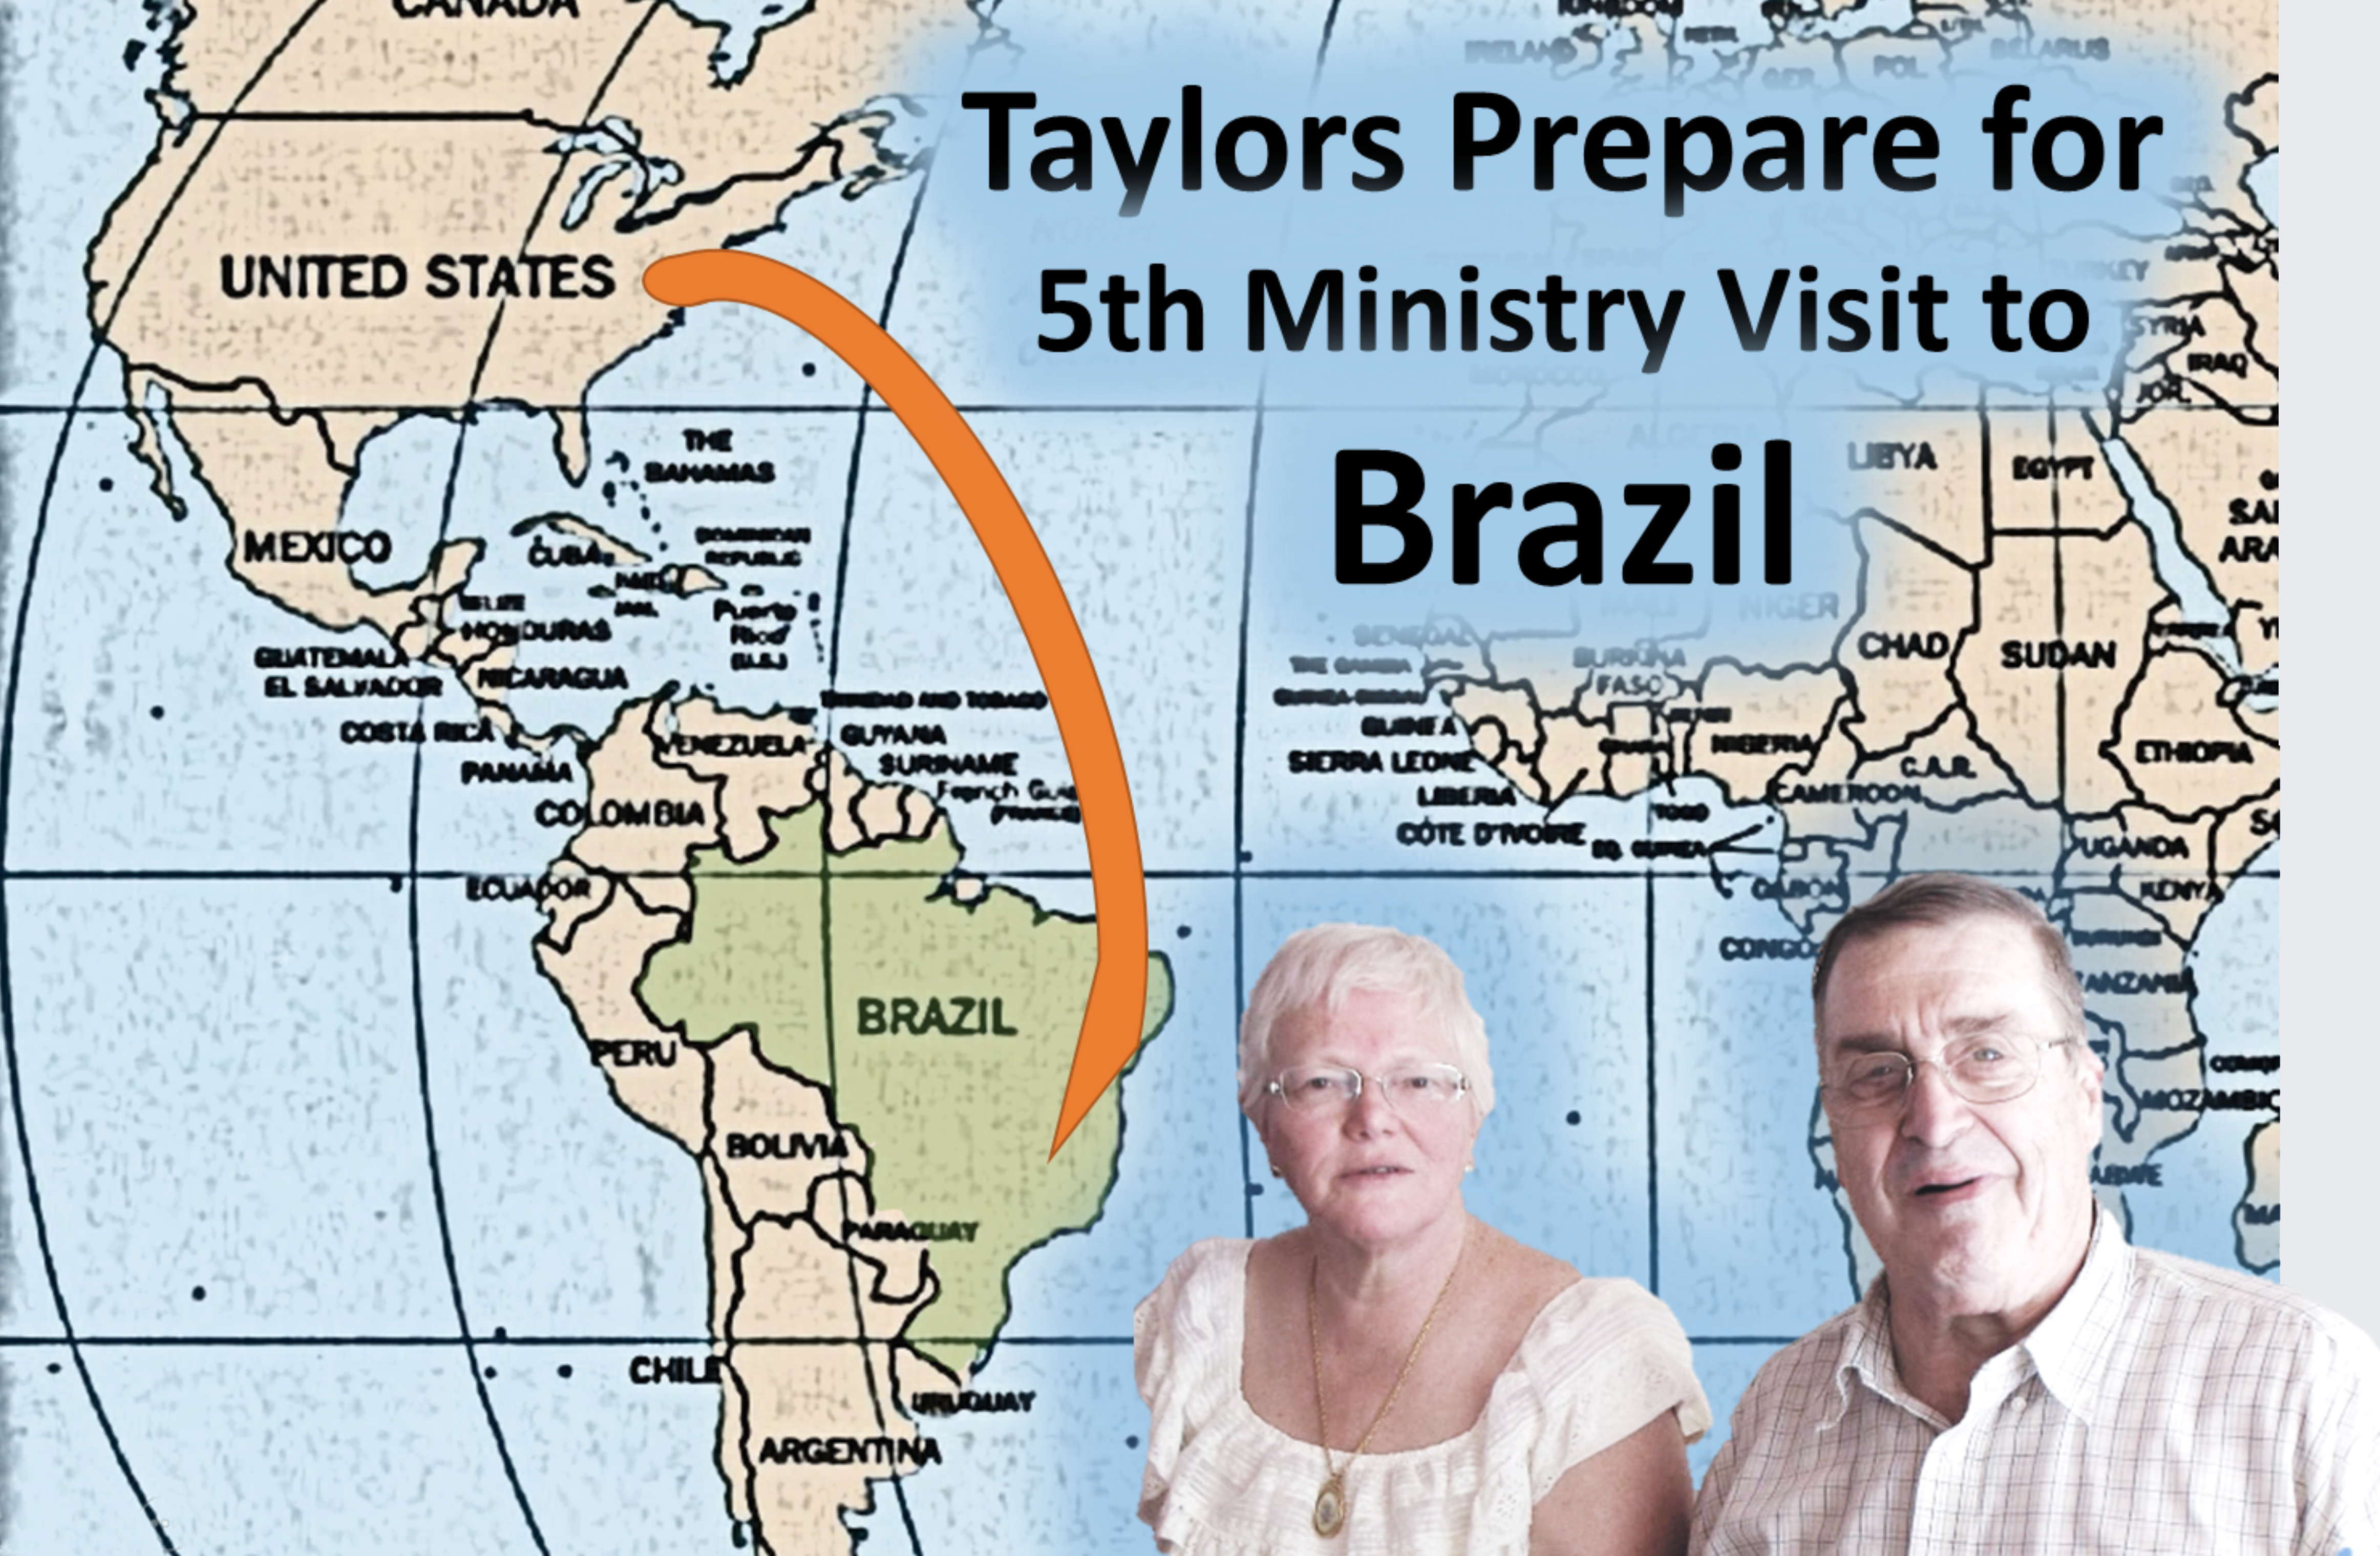 Thumbnail for the post titled: Taylors Prepare for 5th Ministry Visit to Brazil (Fall 2015)